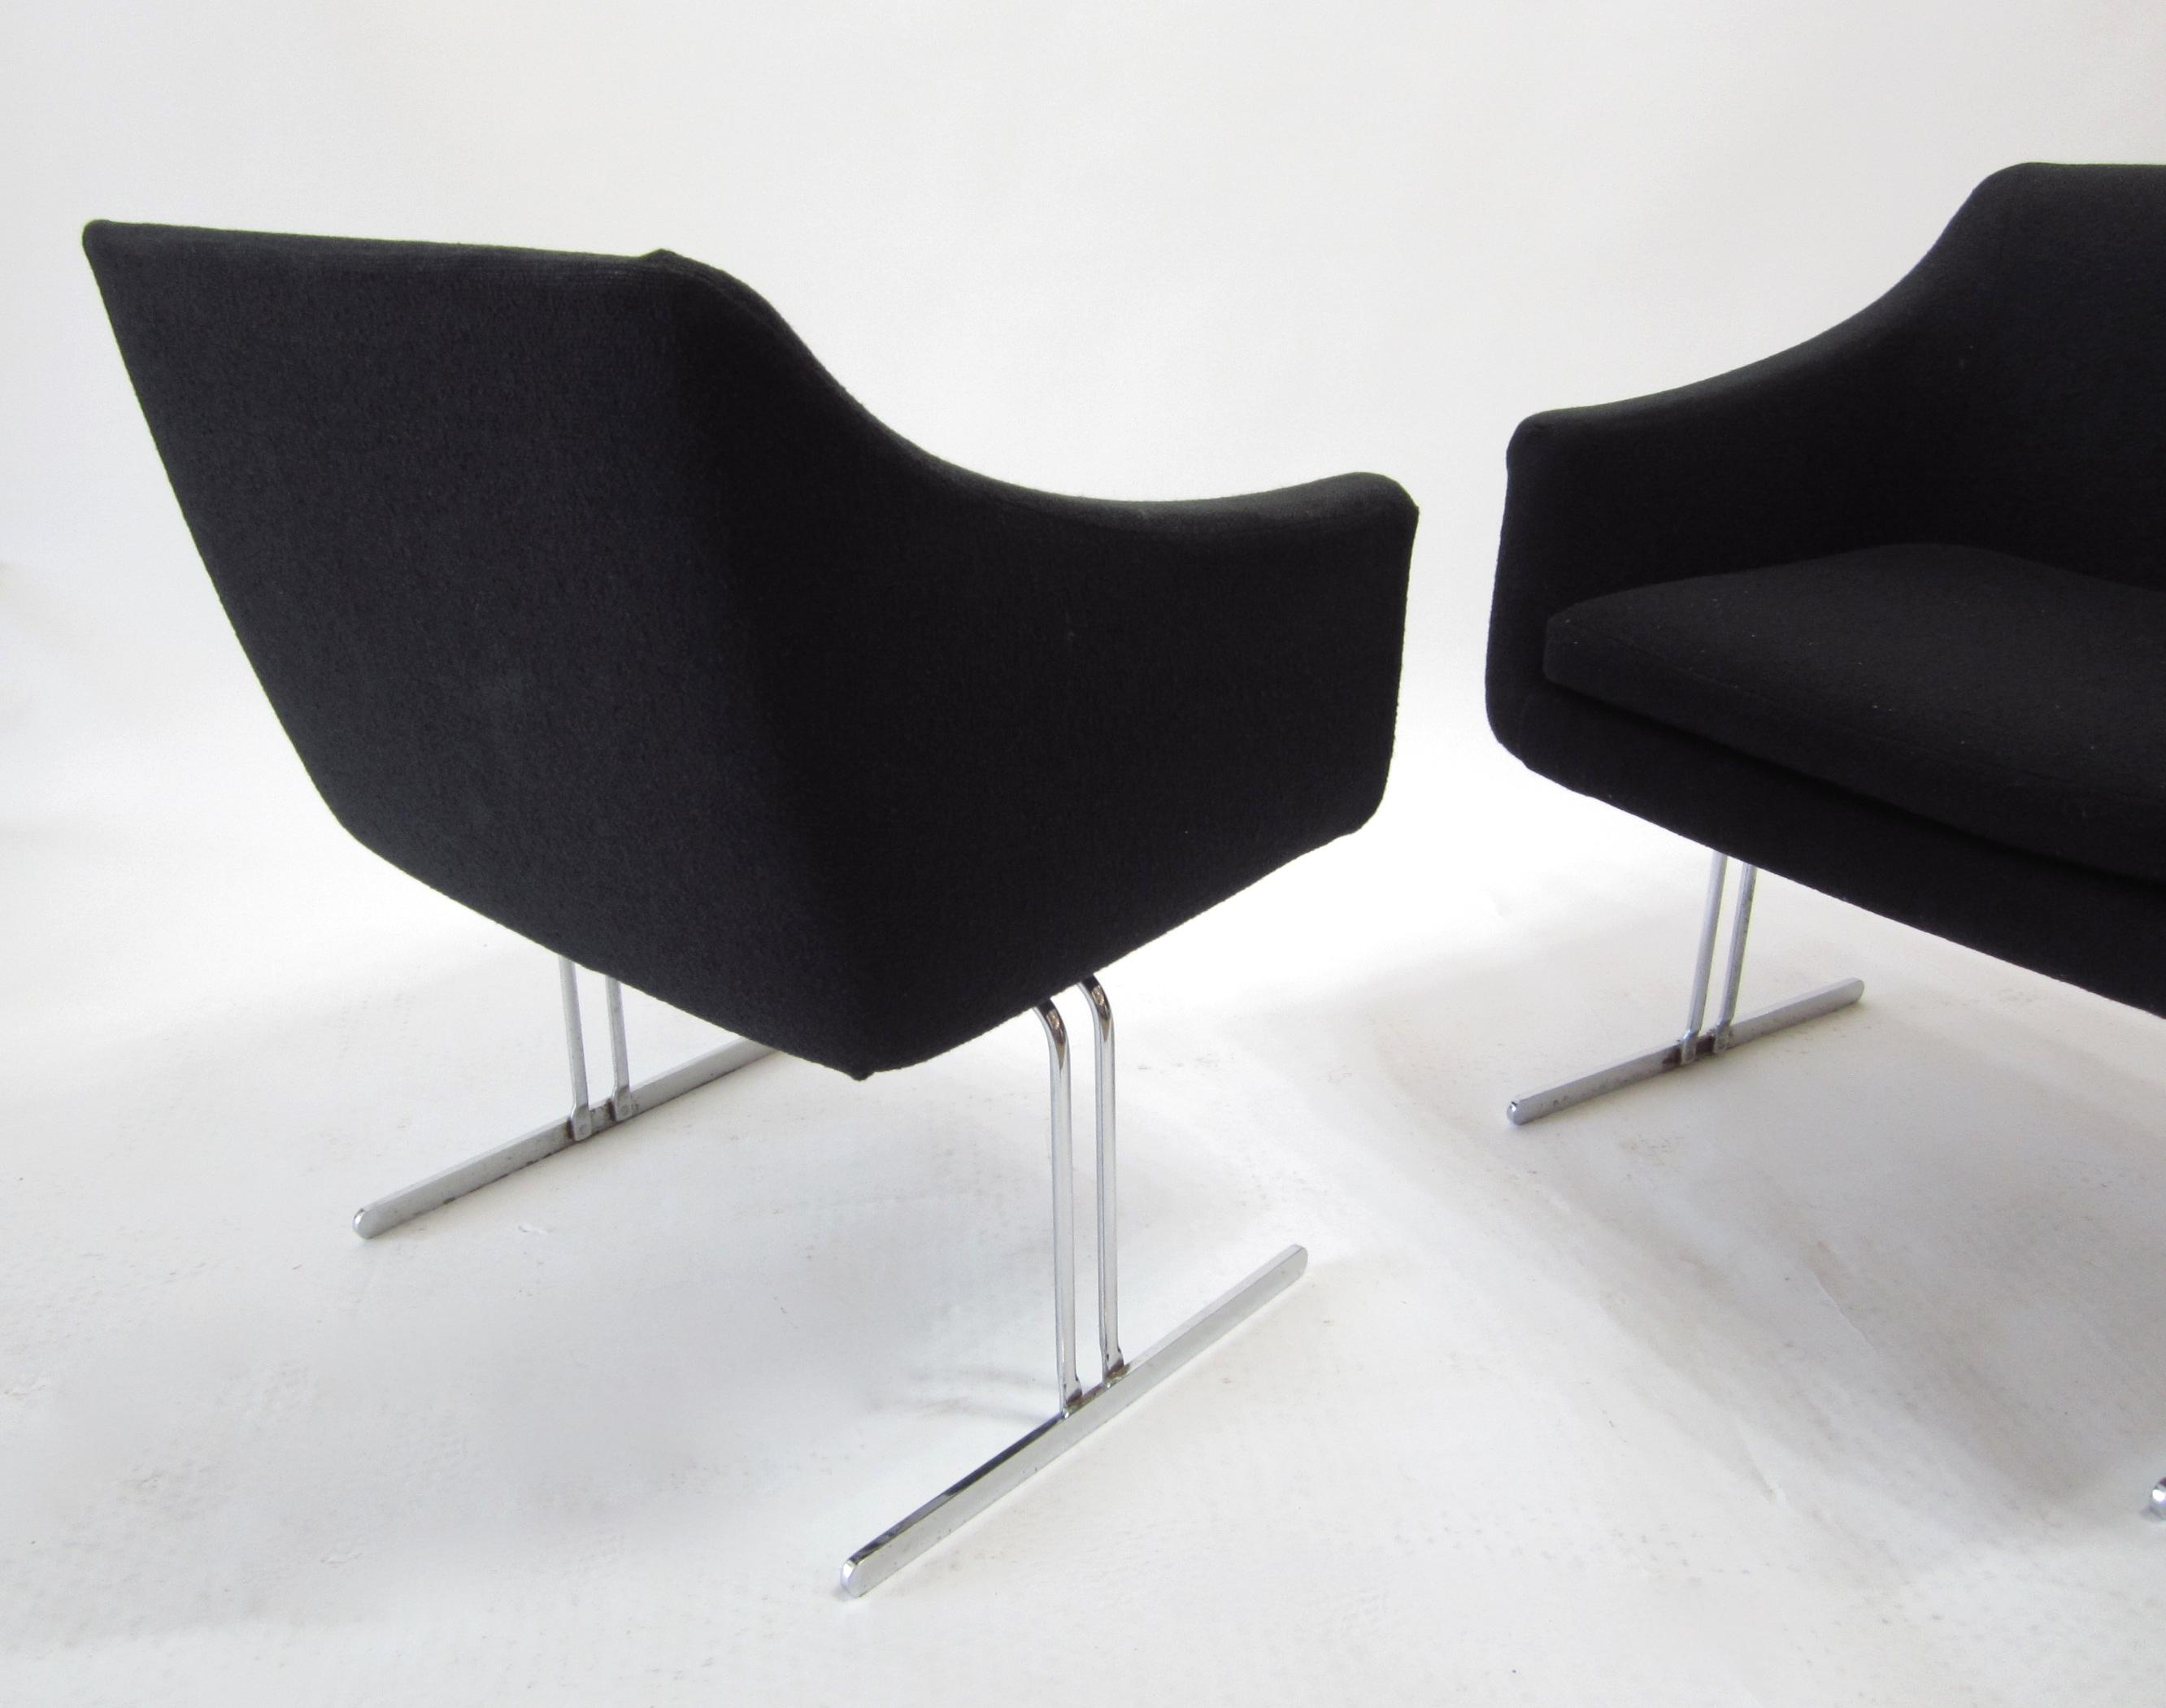 Charmant Hugh Acton By Vecta Group Italy Chrome Frame Lounge Chairs   A Pair   Image  4